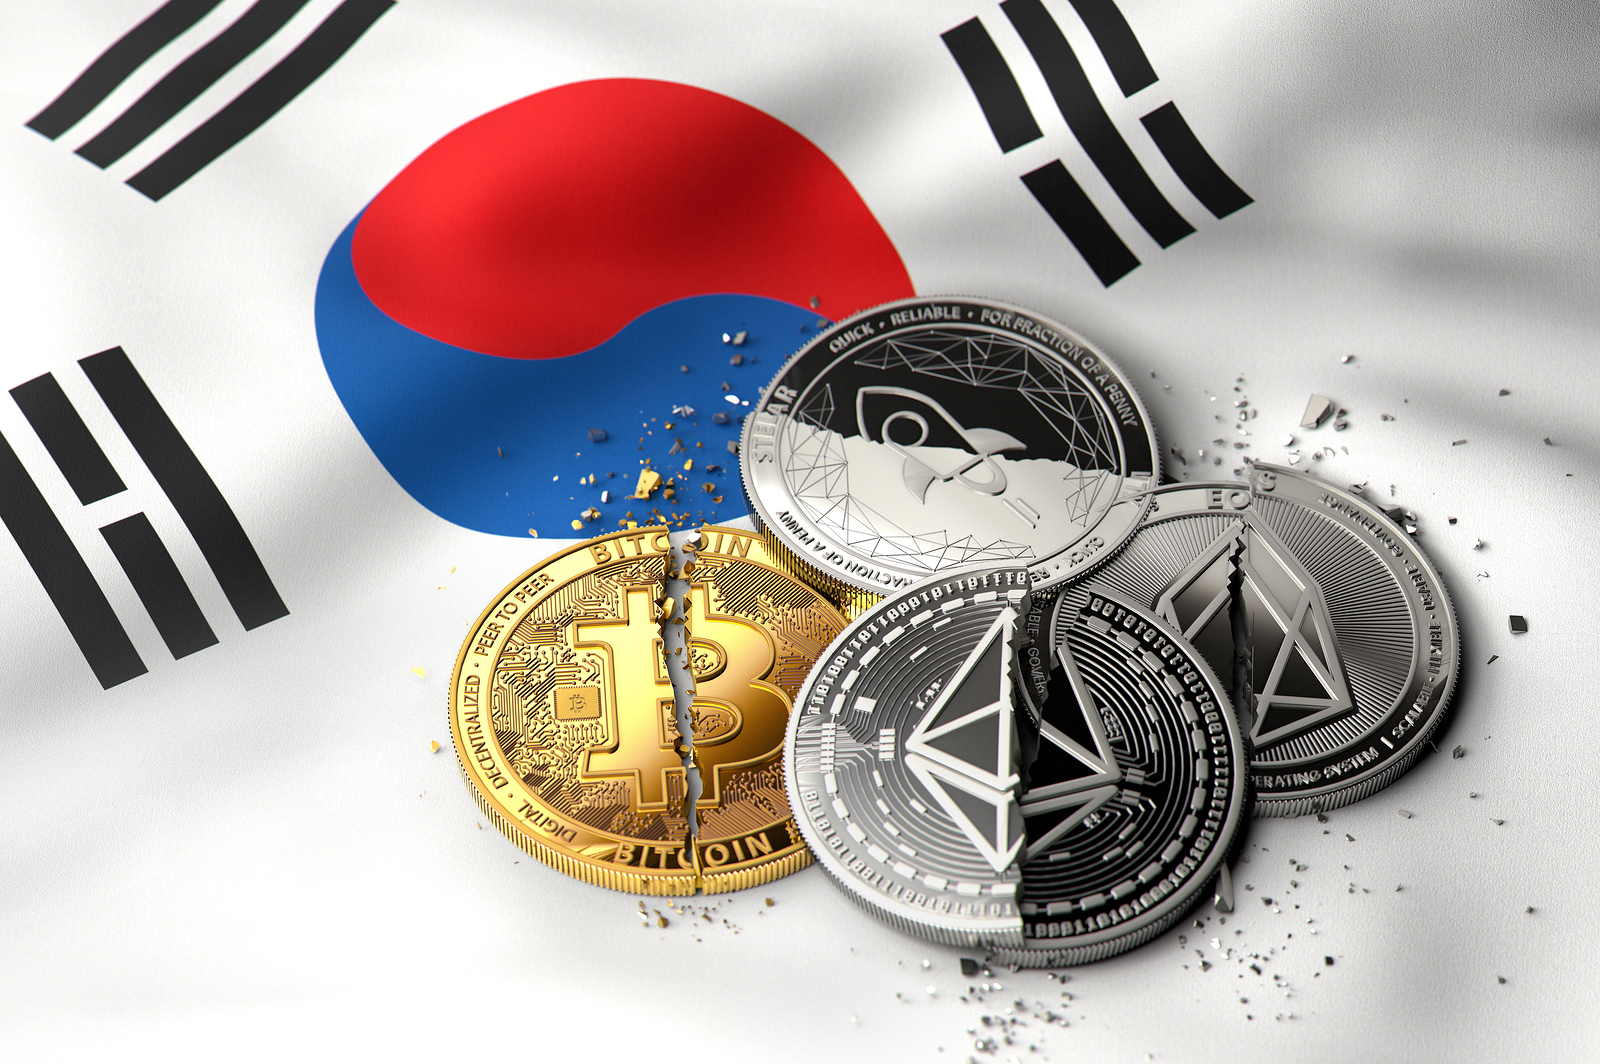 South Korean Government Struggles to Find Balance in Legitimizing Cryptocurrencies